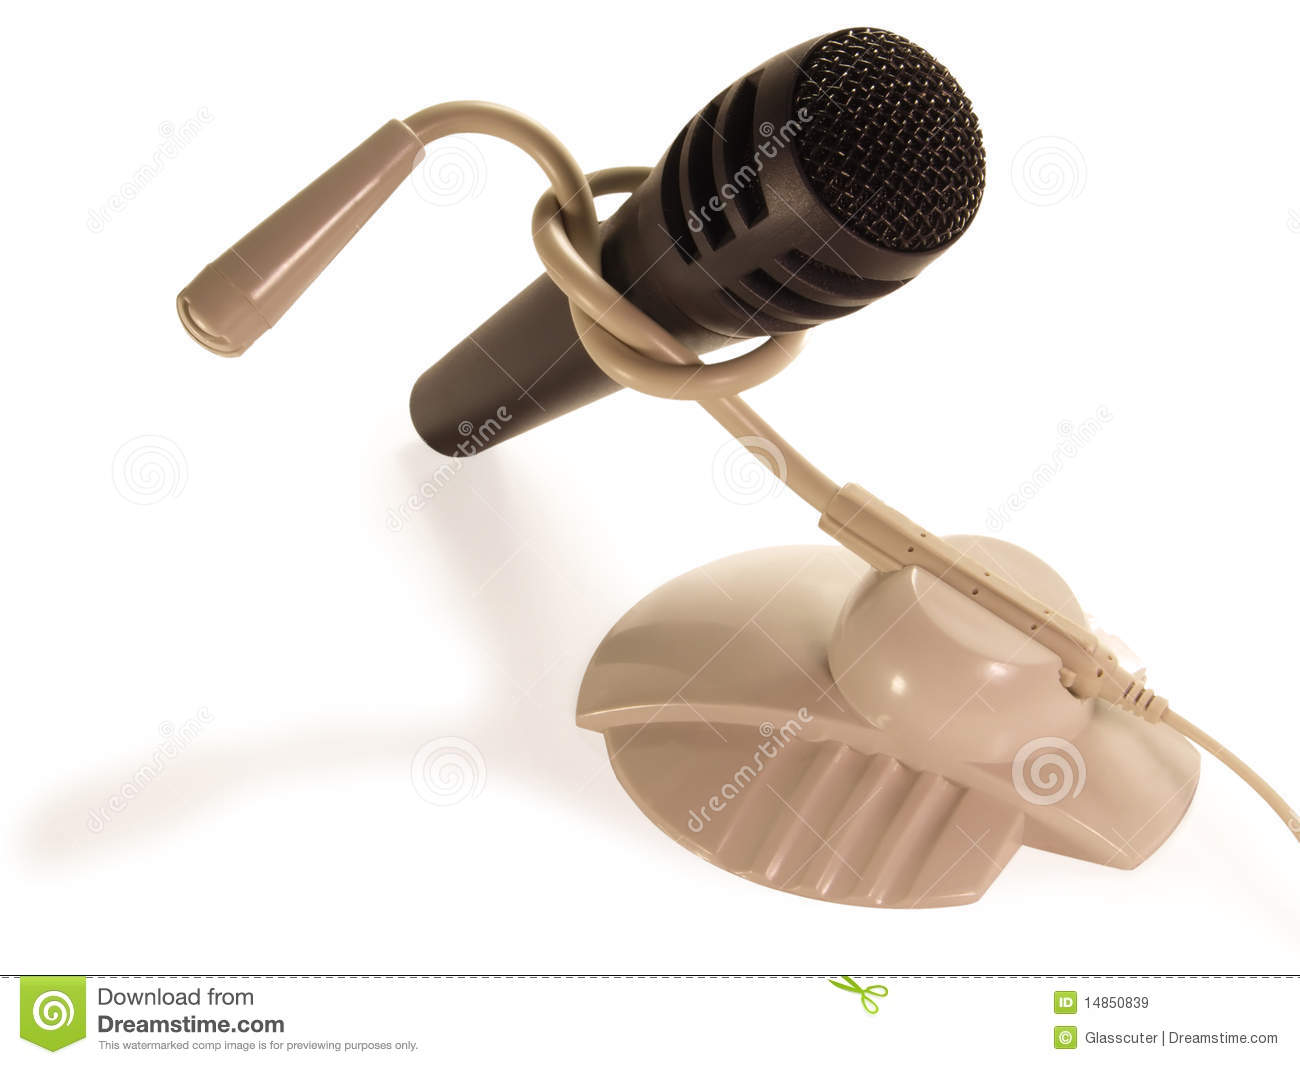 Two different microphone connected to the node.